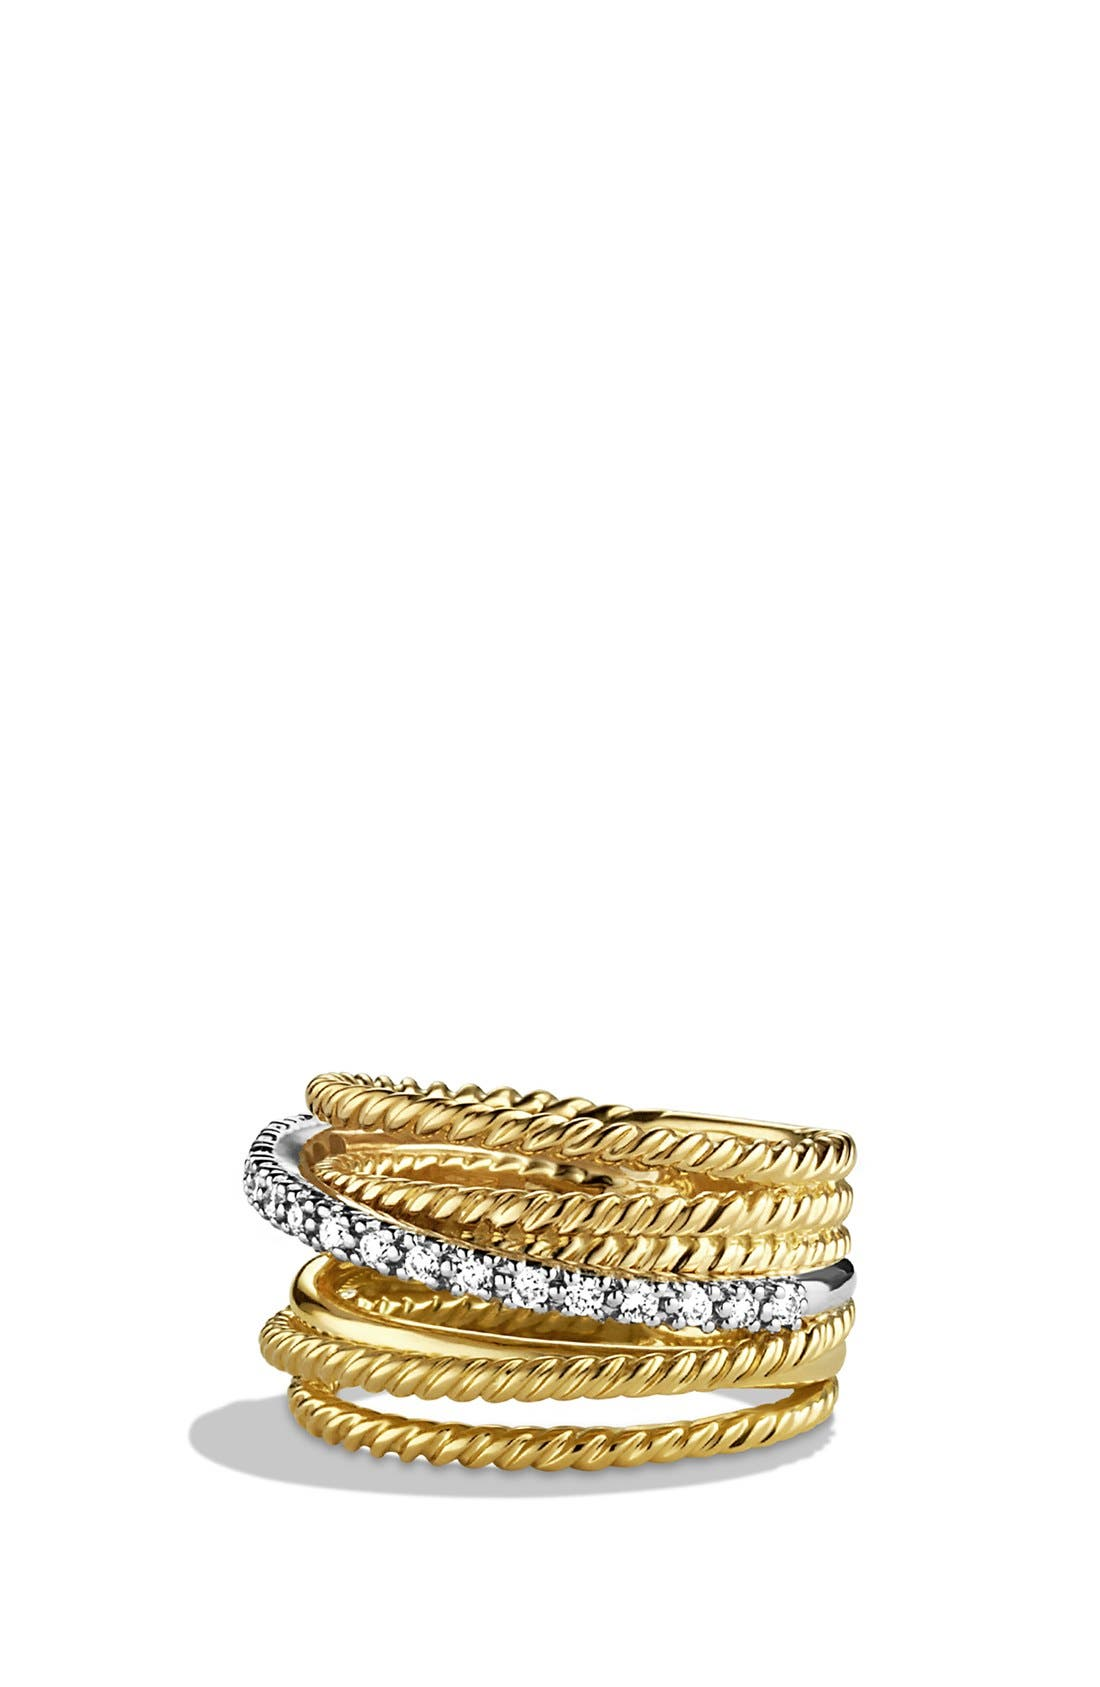 'DY Crossover' Ring with Diamonds in Gold,                         Main,                         color, Diamond